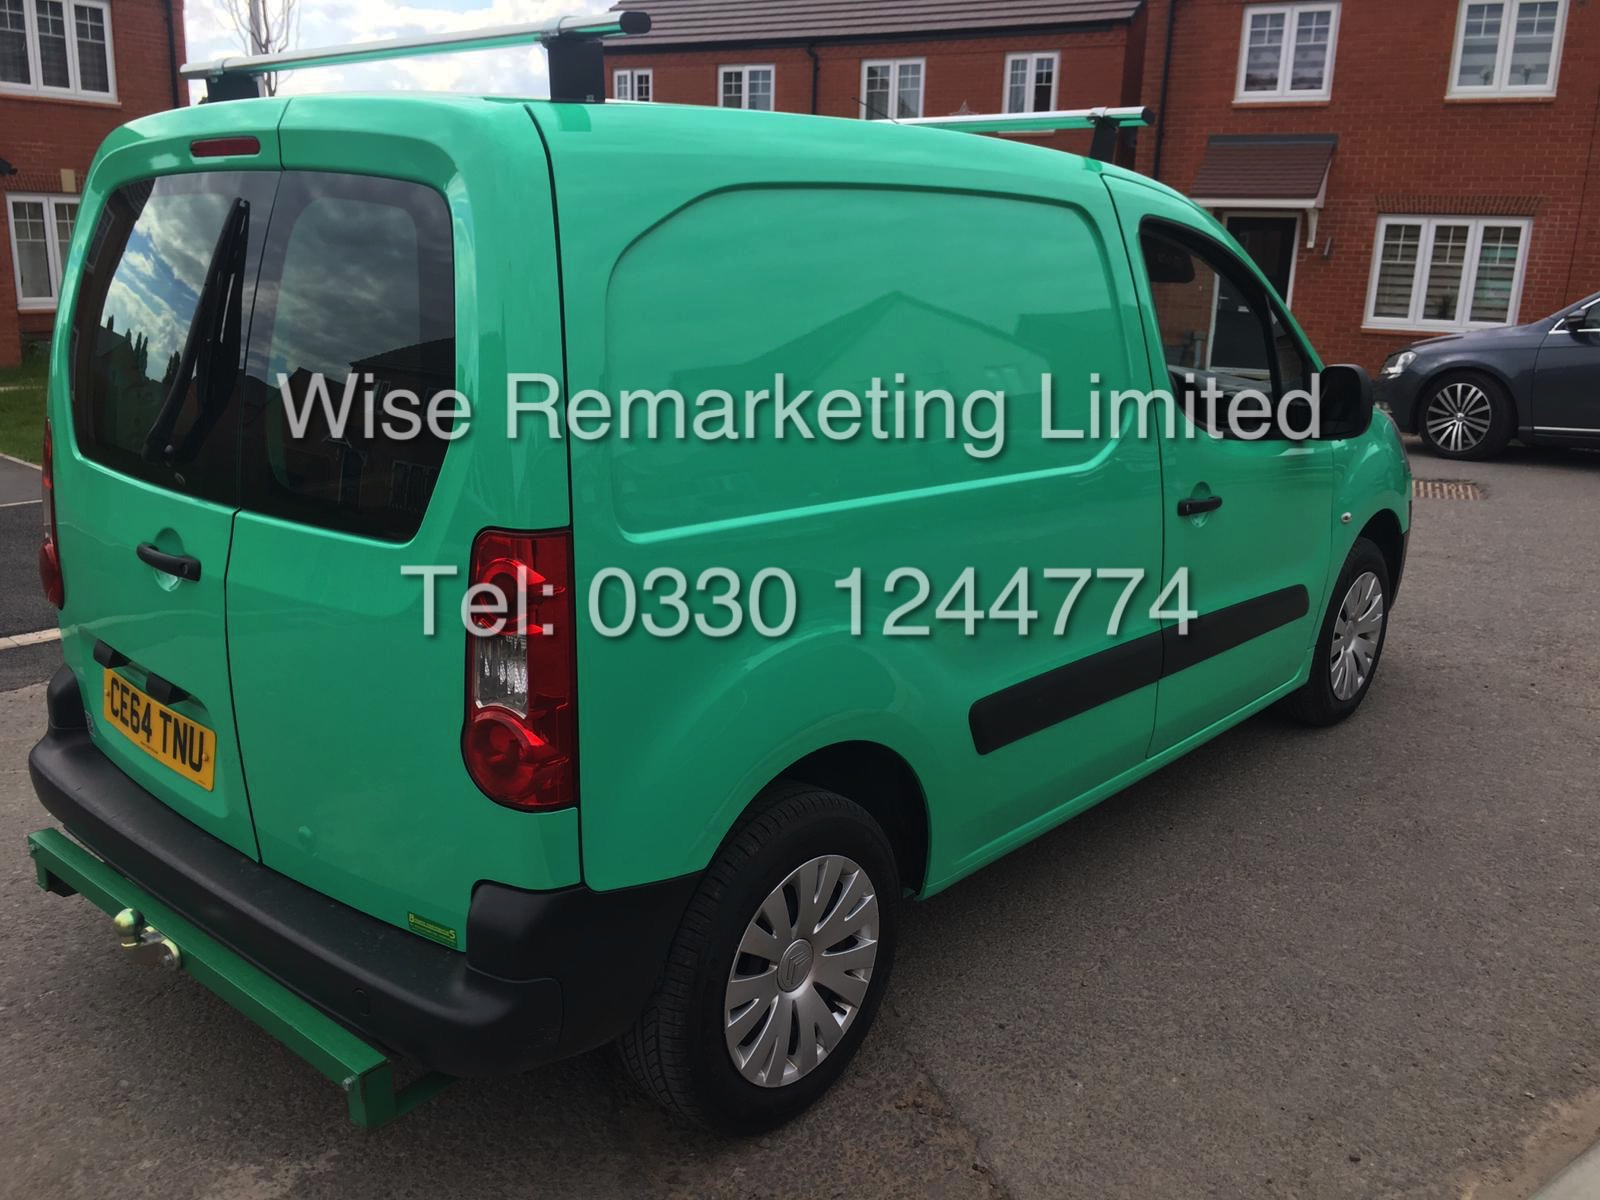 CITROEN BERLINGO 1.6 HDI LX AIRDREAM EDITION *2015 SPEC* - Image 3 of 11